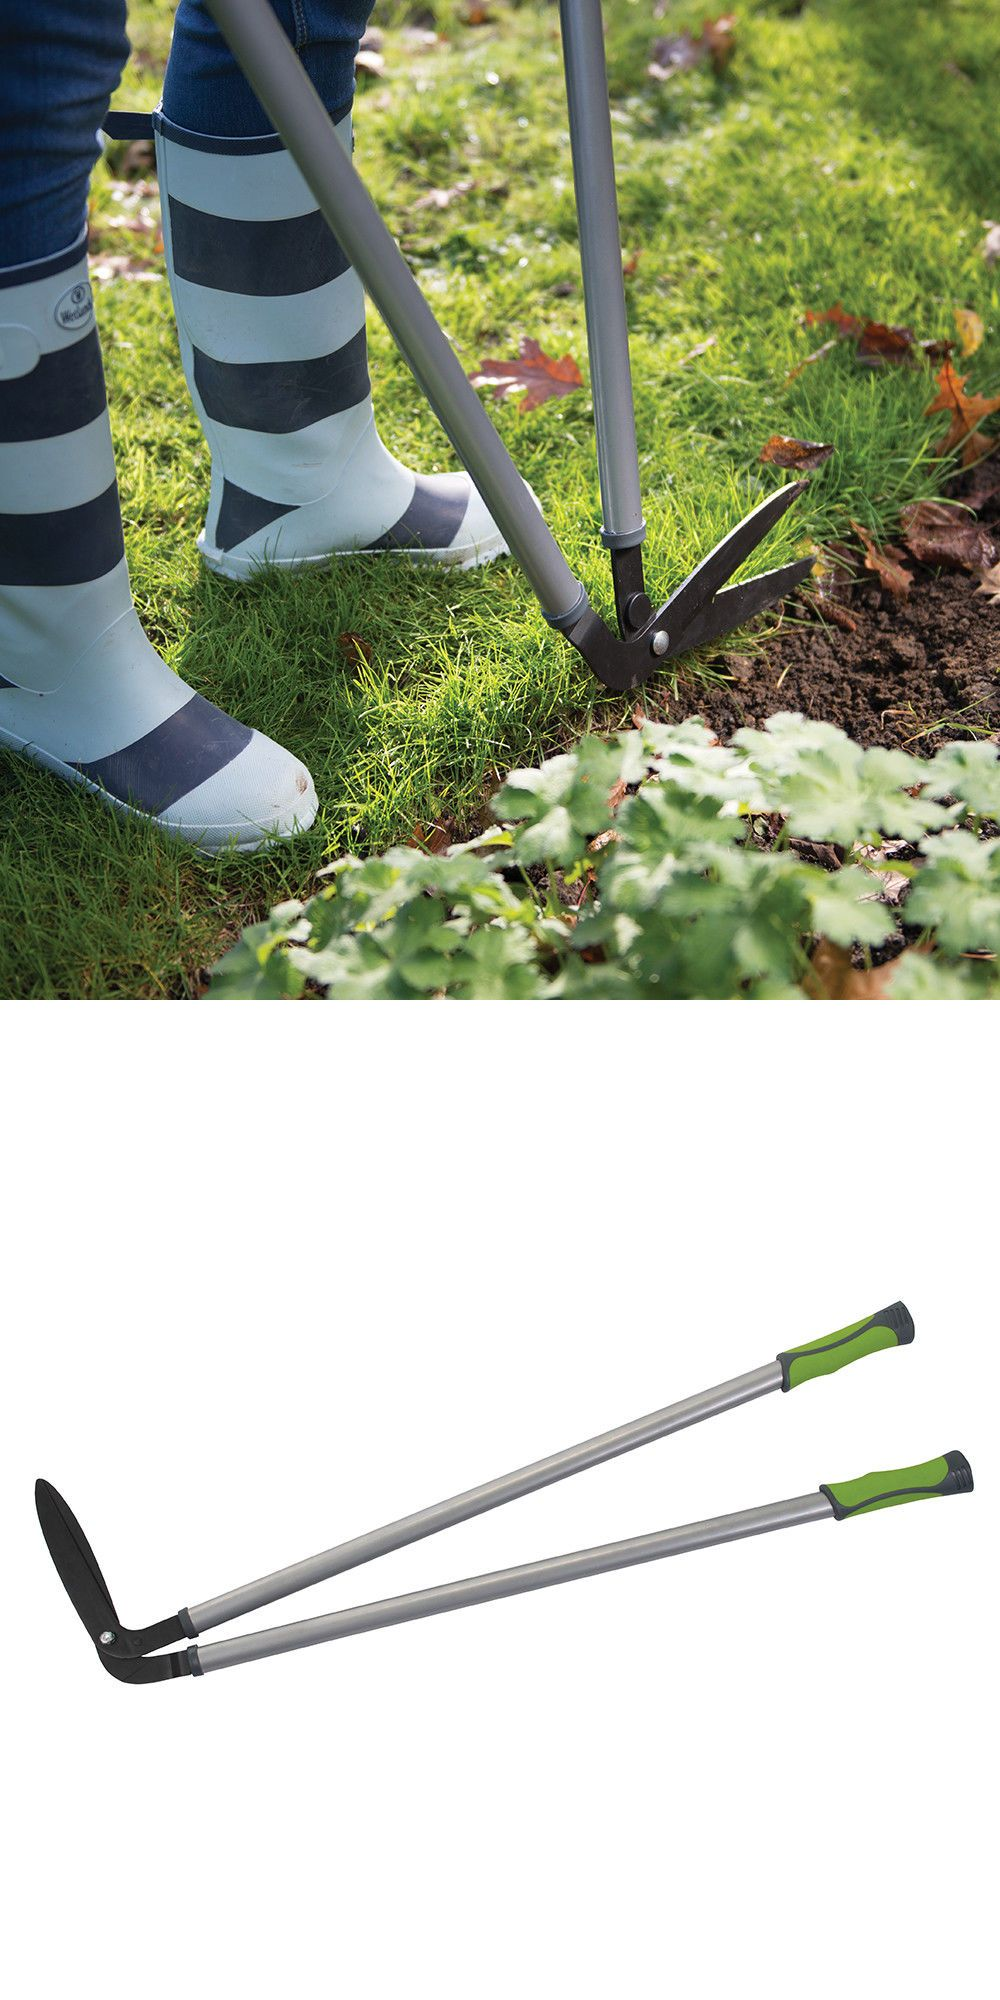 Manual Edgers 178980 Shears To Borders Trimmer Grass Length 36 5